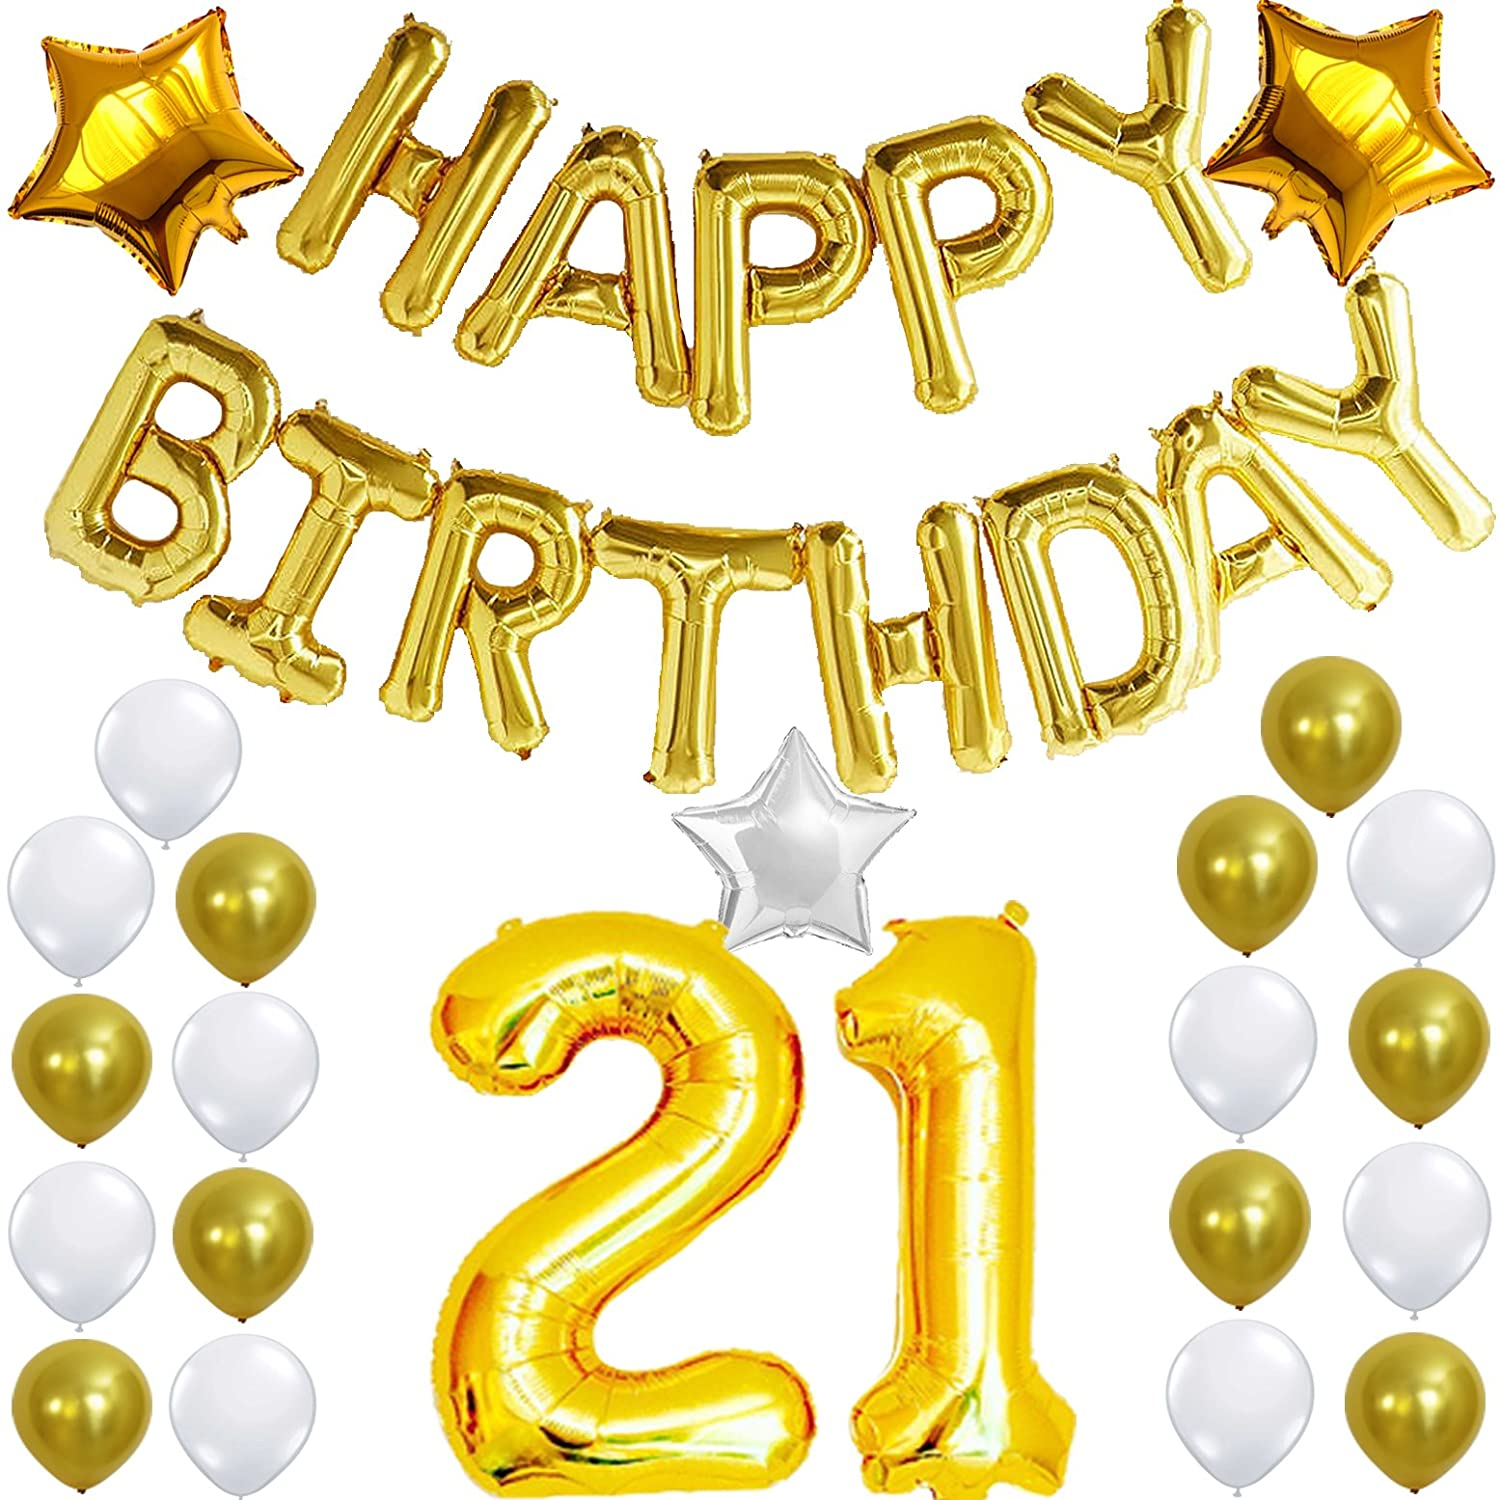 Online Cheap Wholesale 21st Birthday Decorations Party KIT